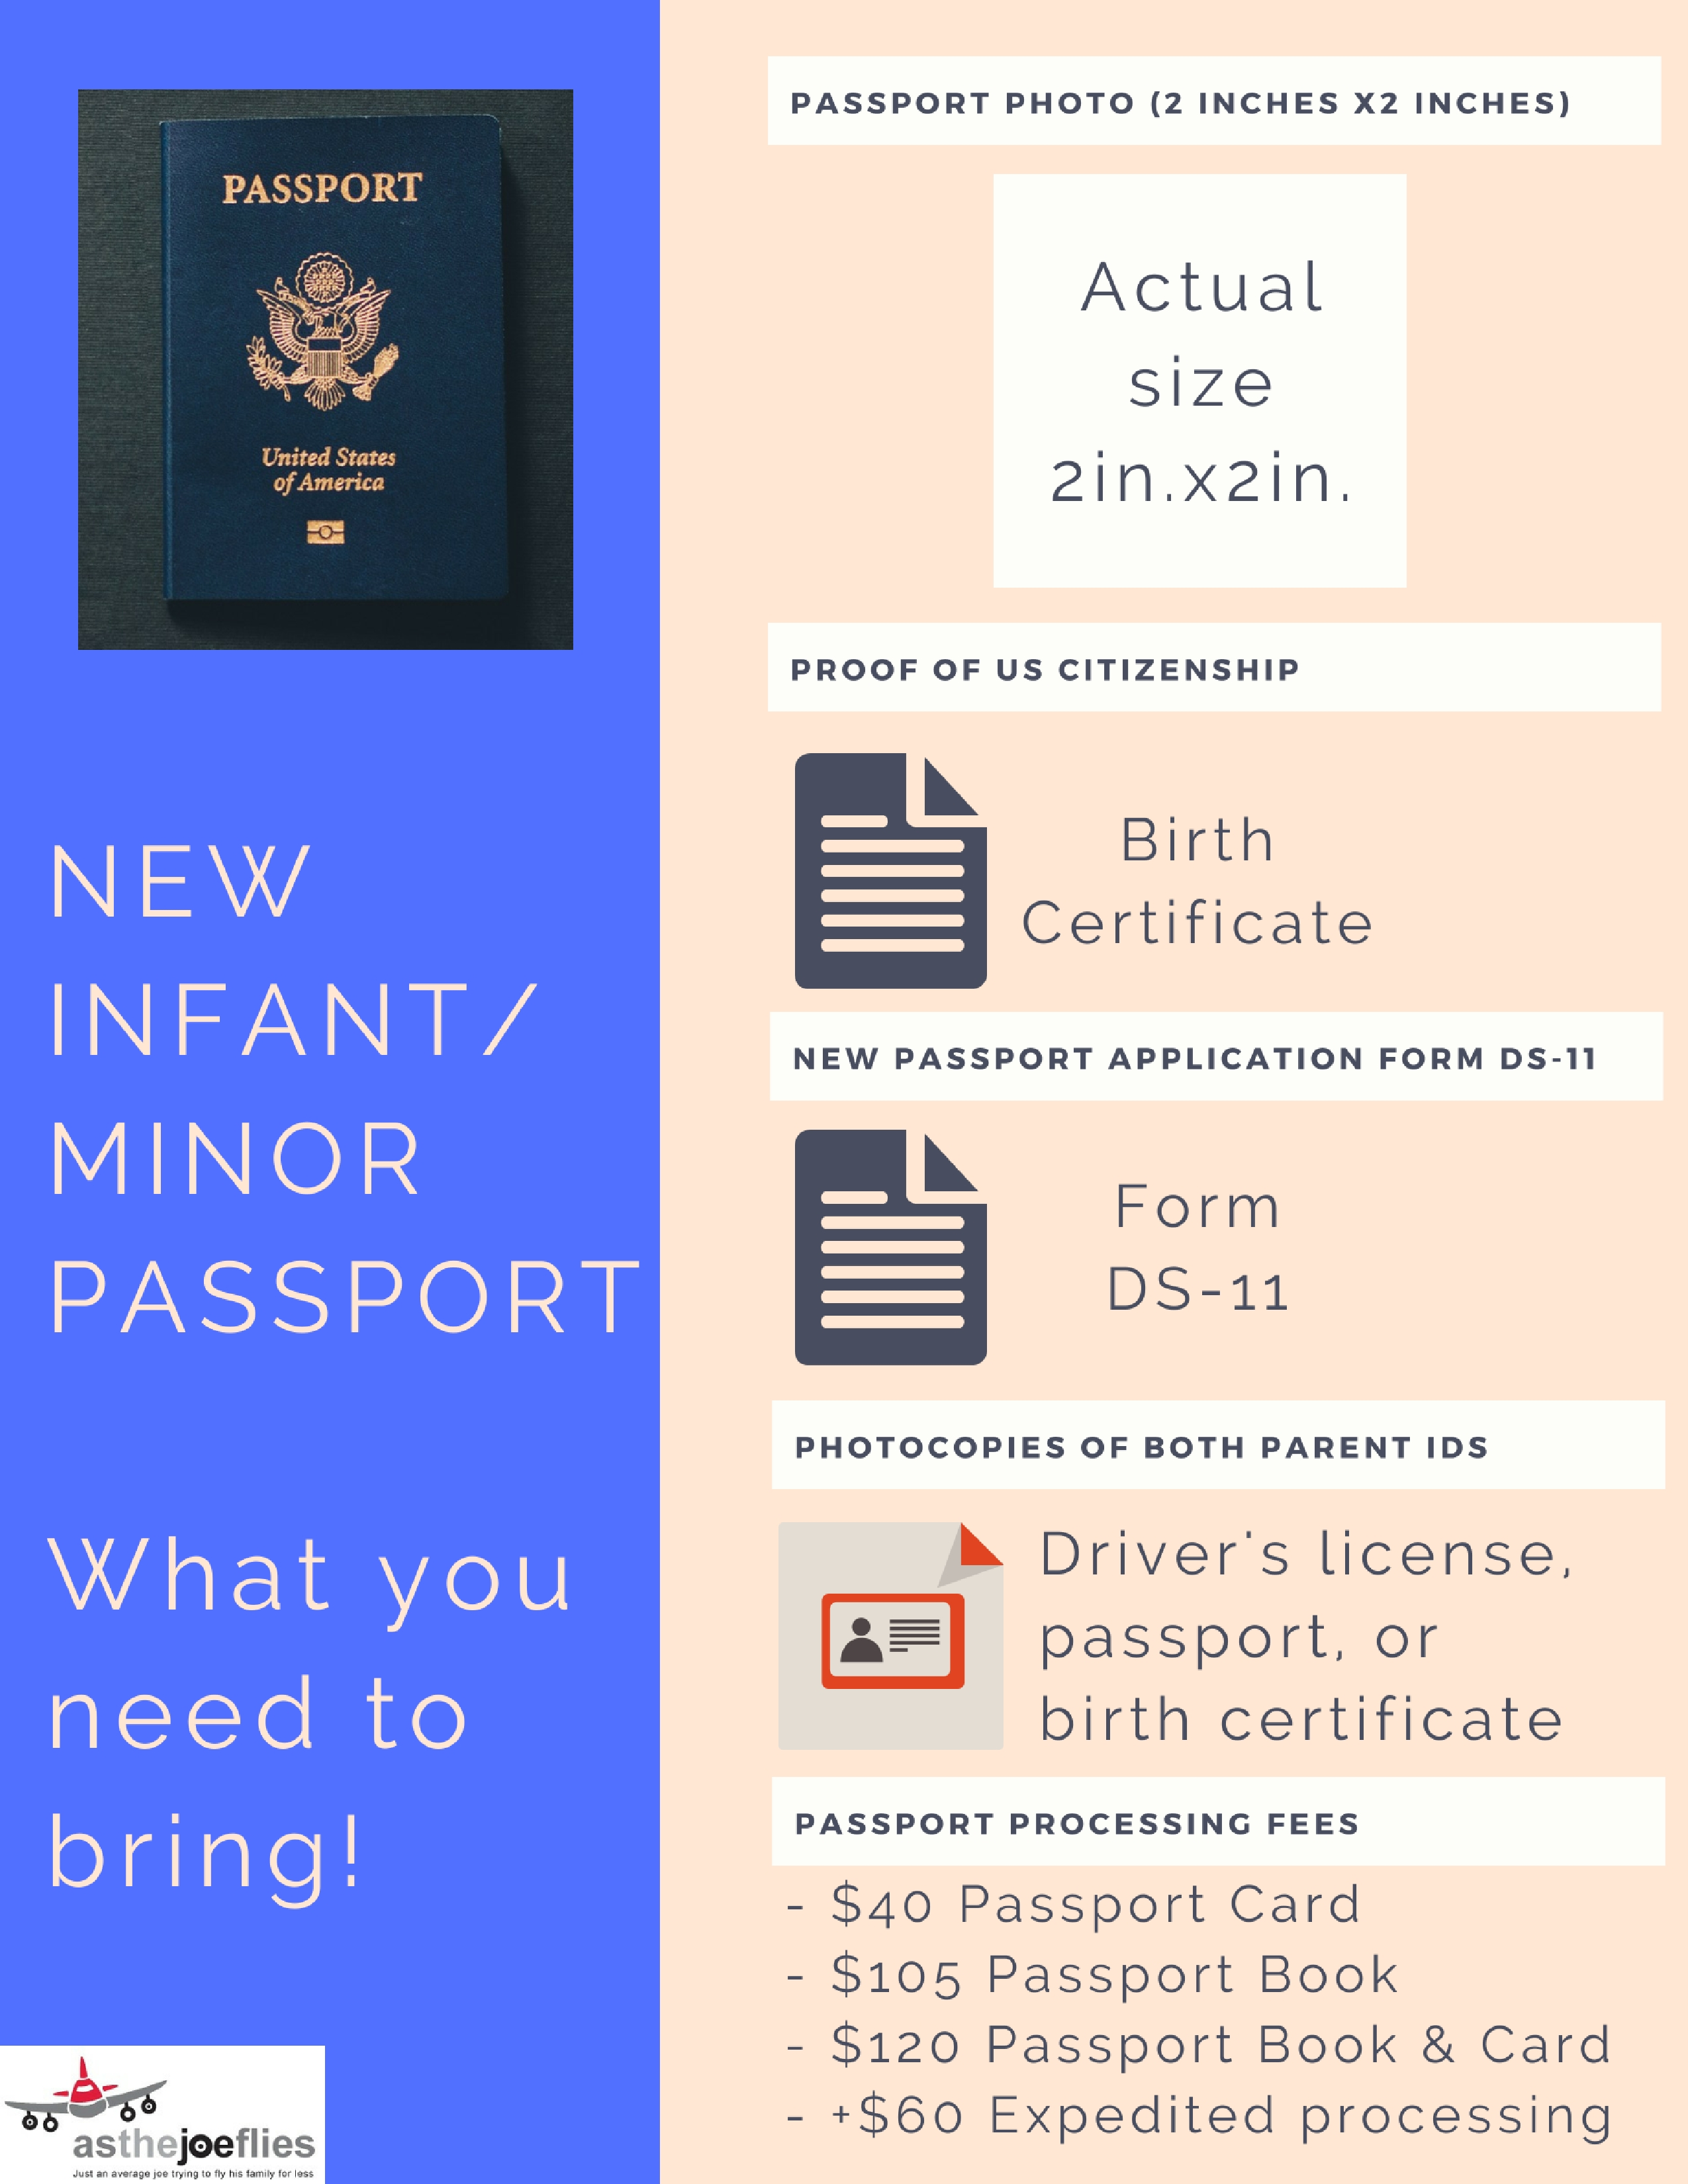 Applying for an infant passport is easy. Follow this simple step by step guide to get a passport for any minor. Includes checklist of everything you need!